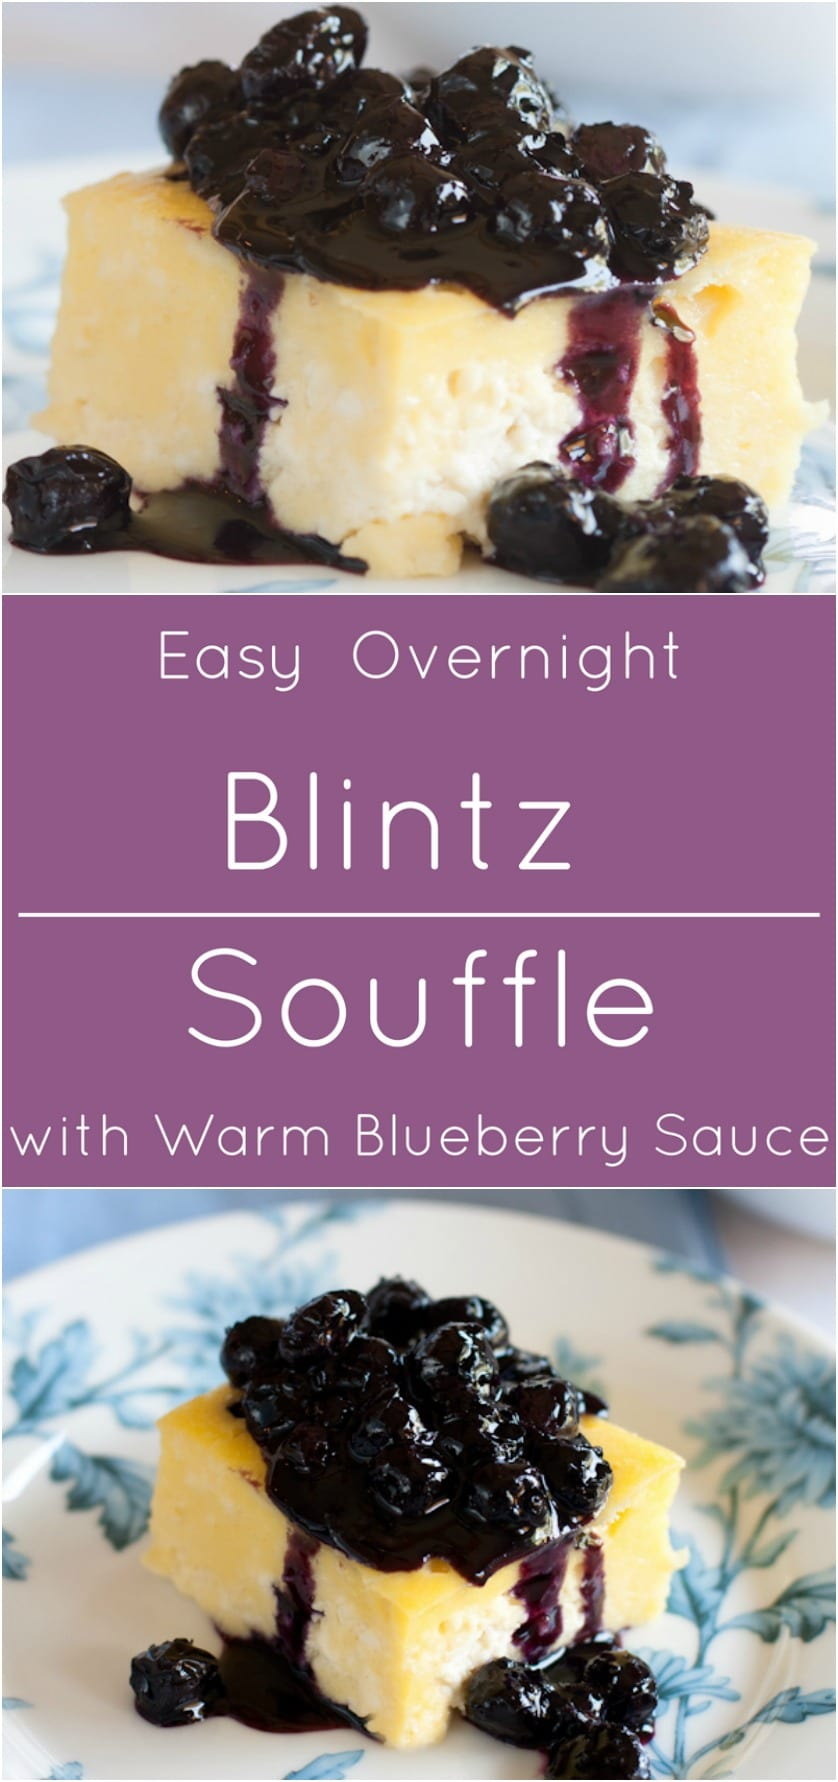 Easy Blintz Souffle with warm blueberry sauce! Make it the night before and pop it in the over before guests arrive!